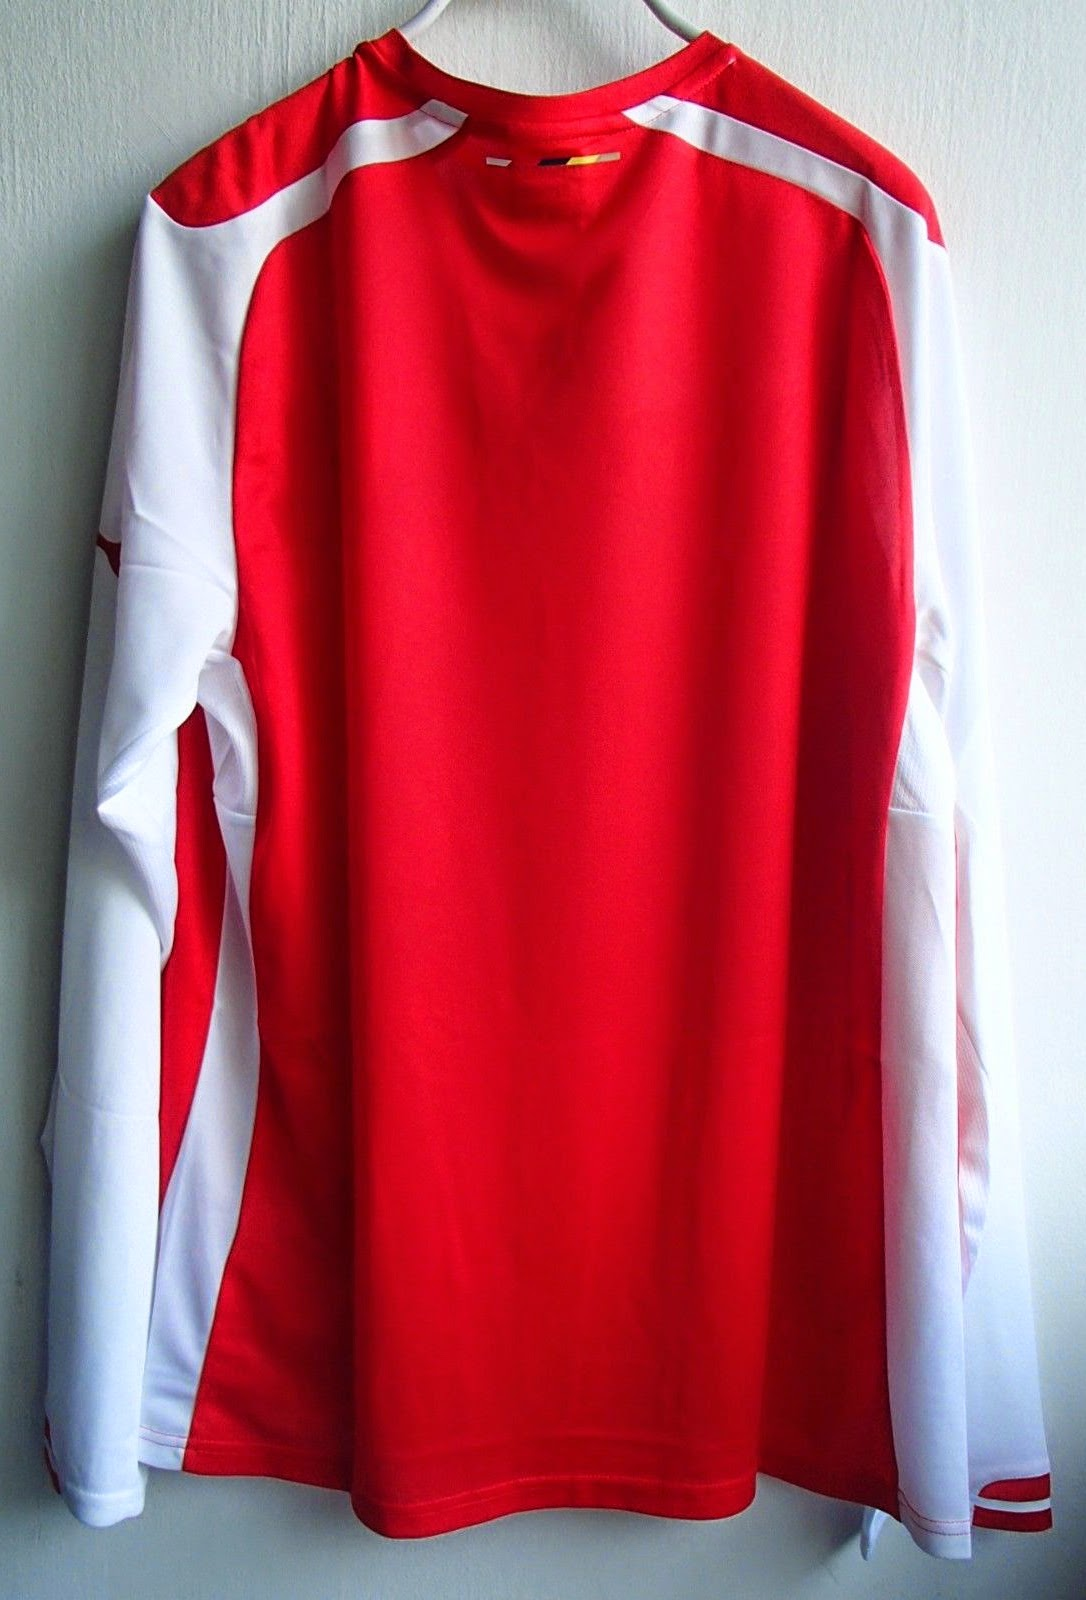 THAILAND QUALITY(AAA) ARSENAL HOME LONG SLEEVE SOCCER JERSEY 14-15 RED PUMA